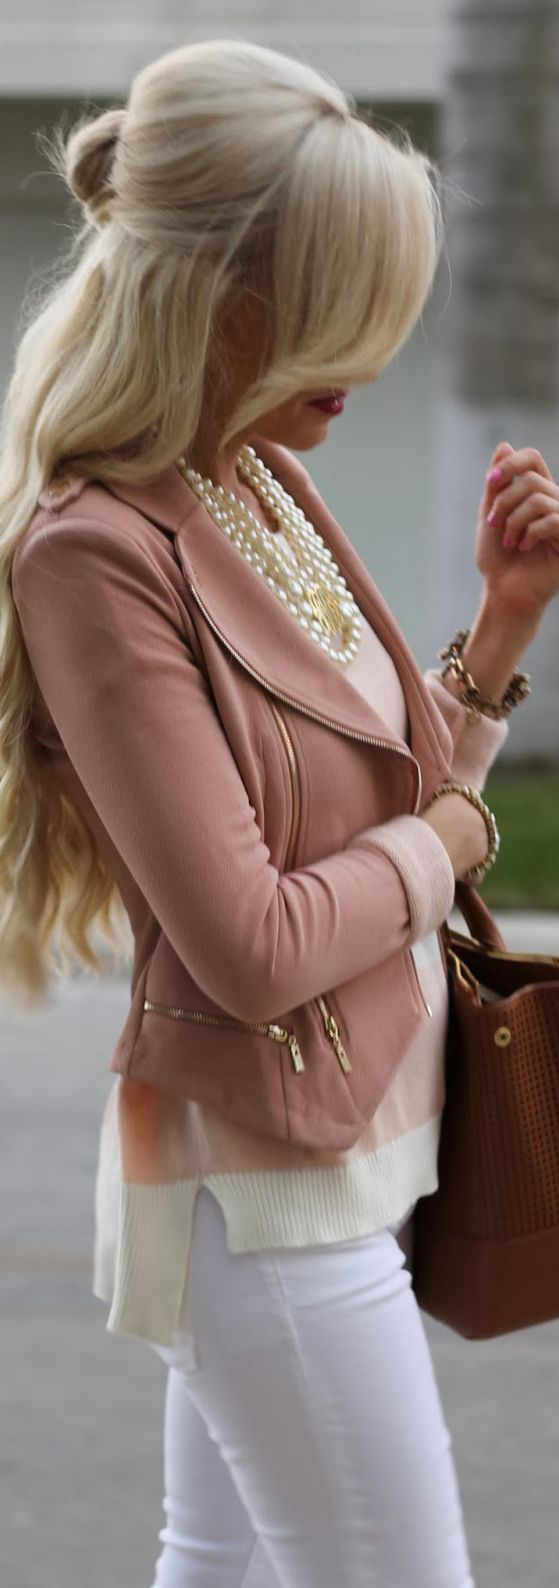 Spring Fashion 2014. Soft nude & rose play perfectly off the white denim. ::M::